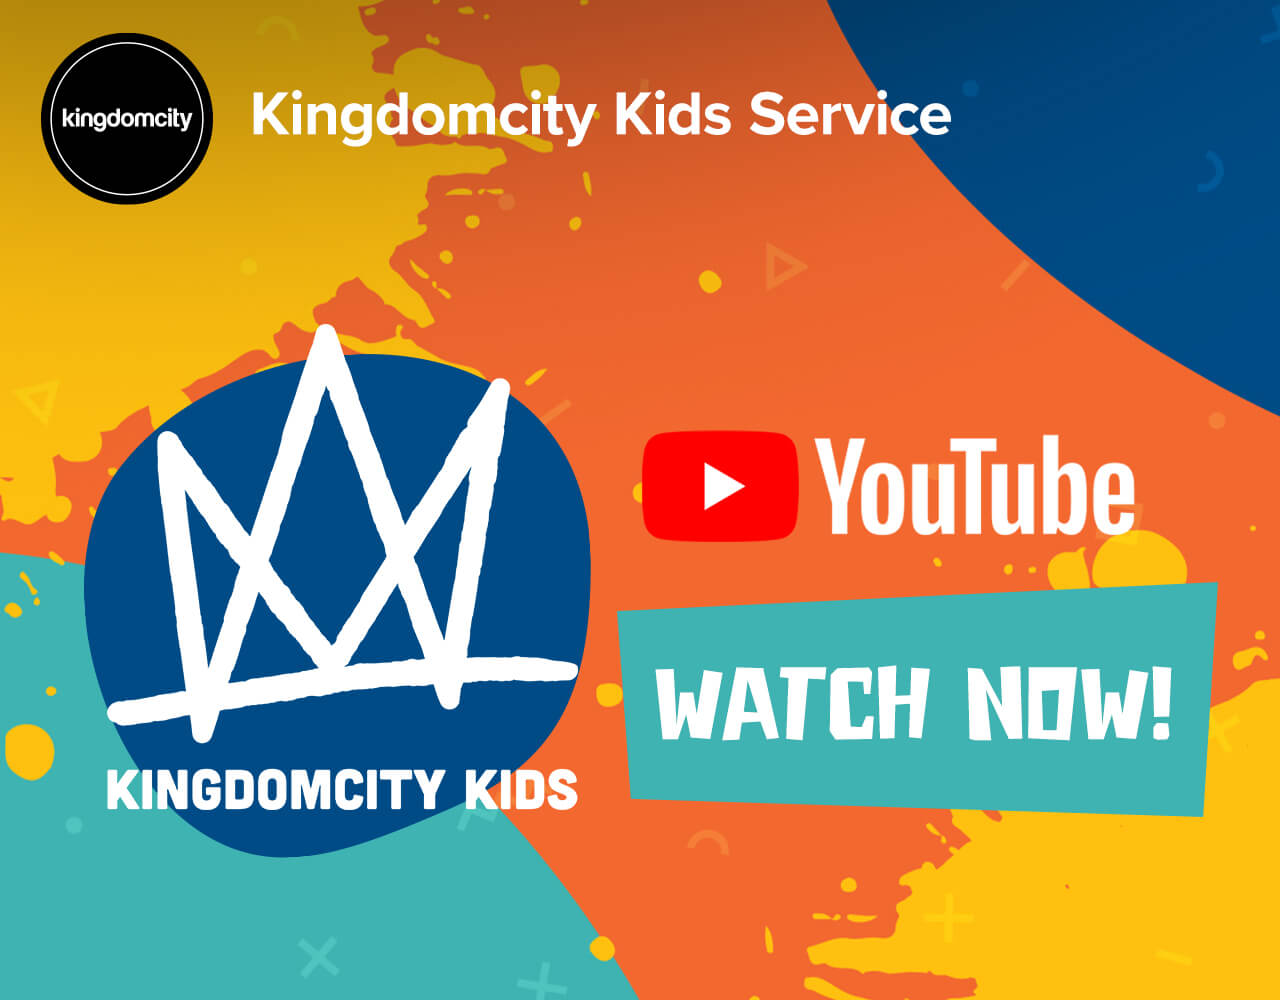 Kingdomcity Kids service on YouTube